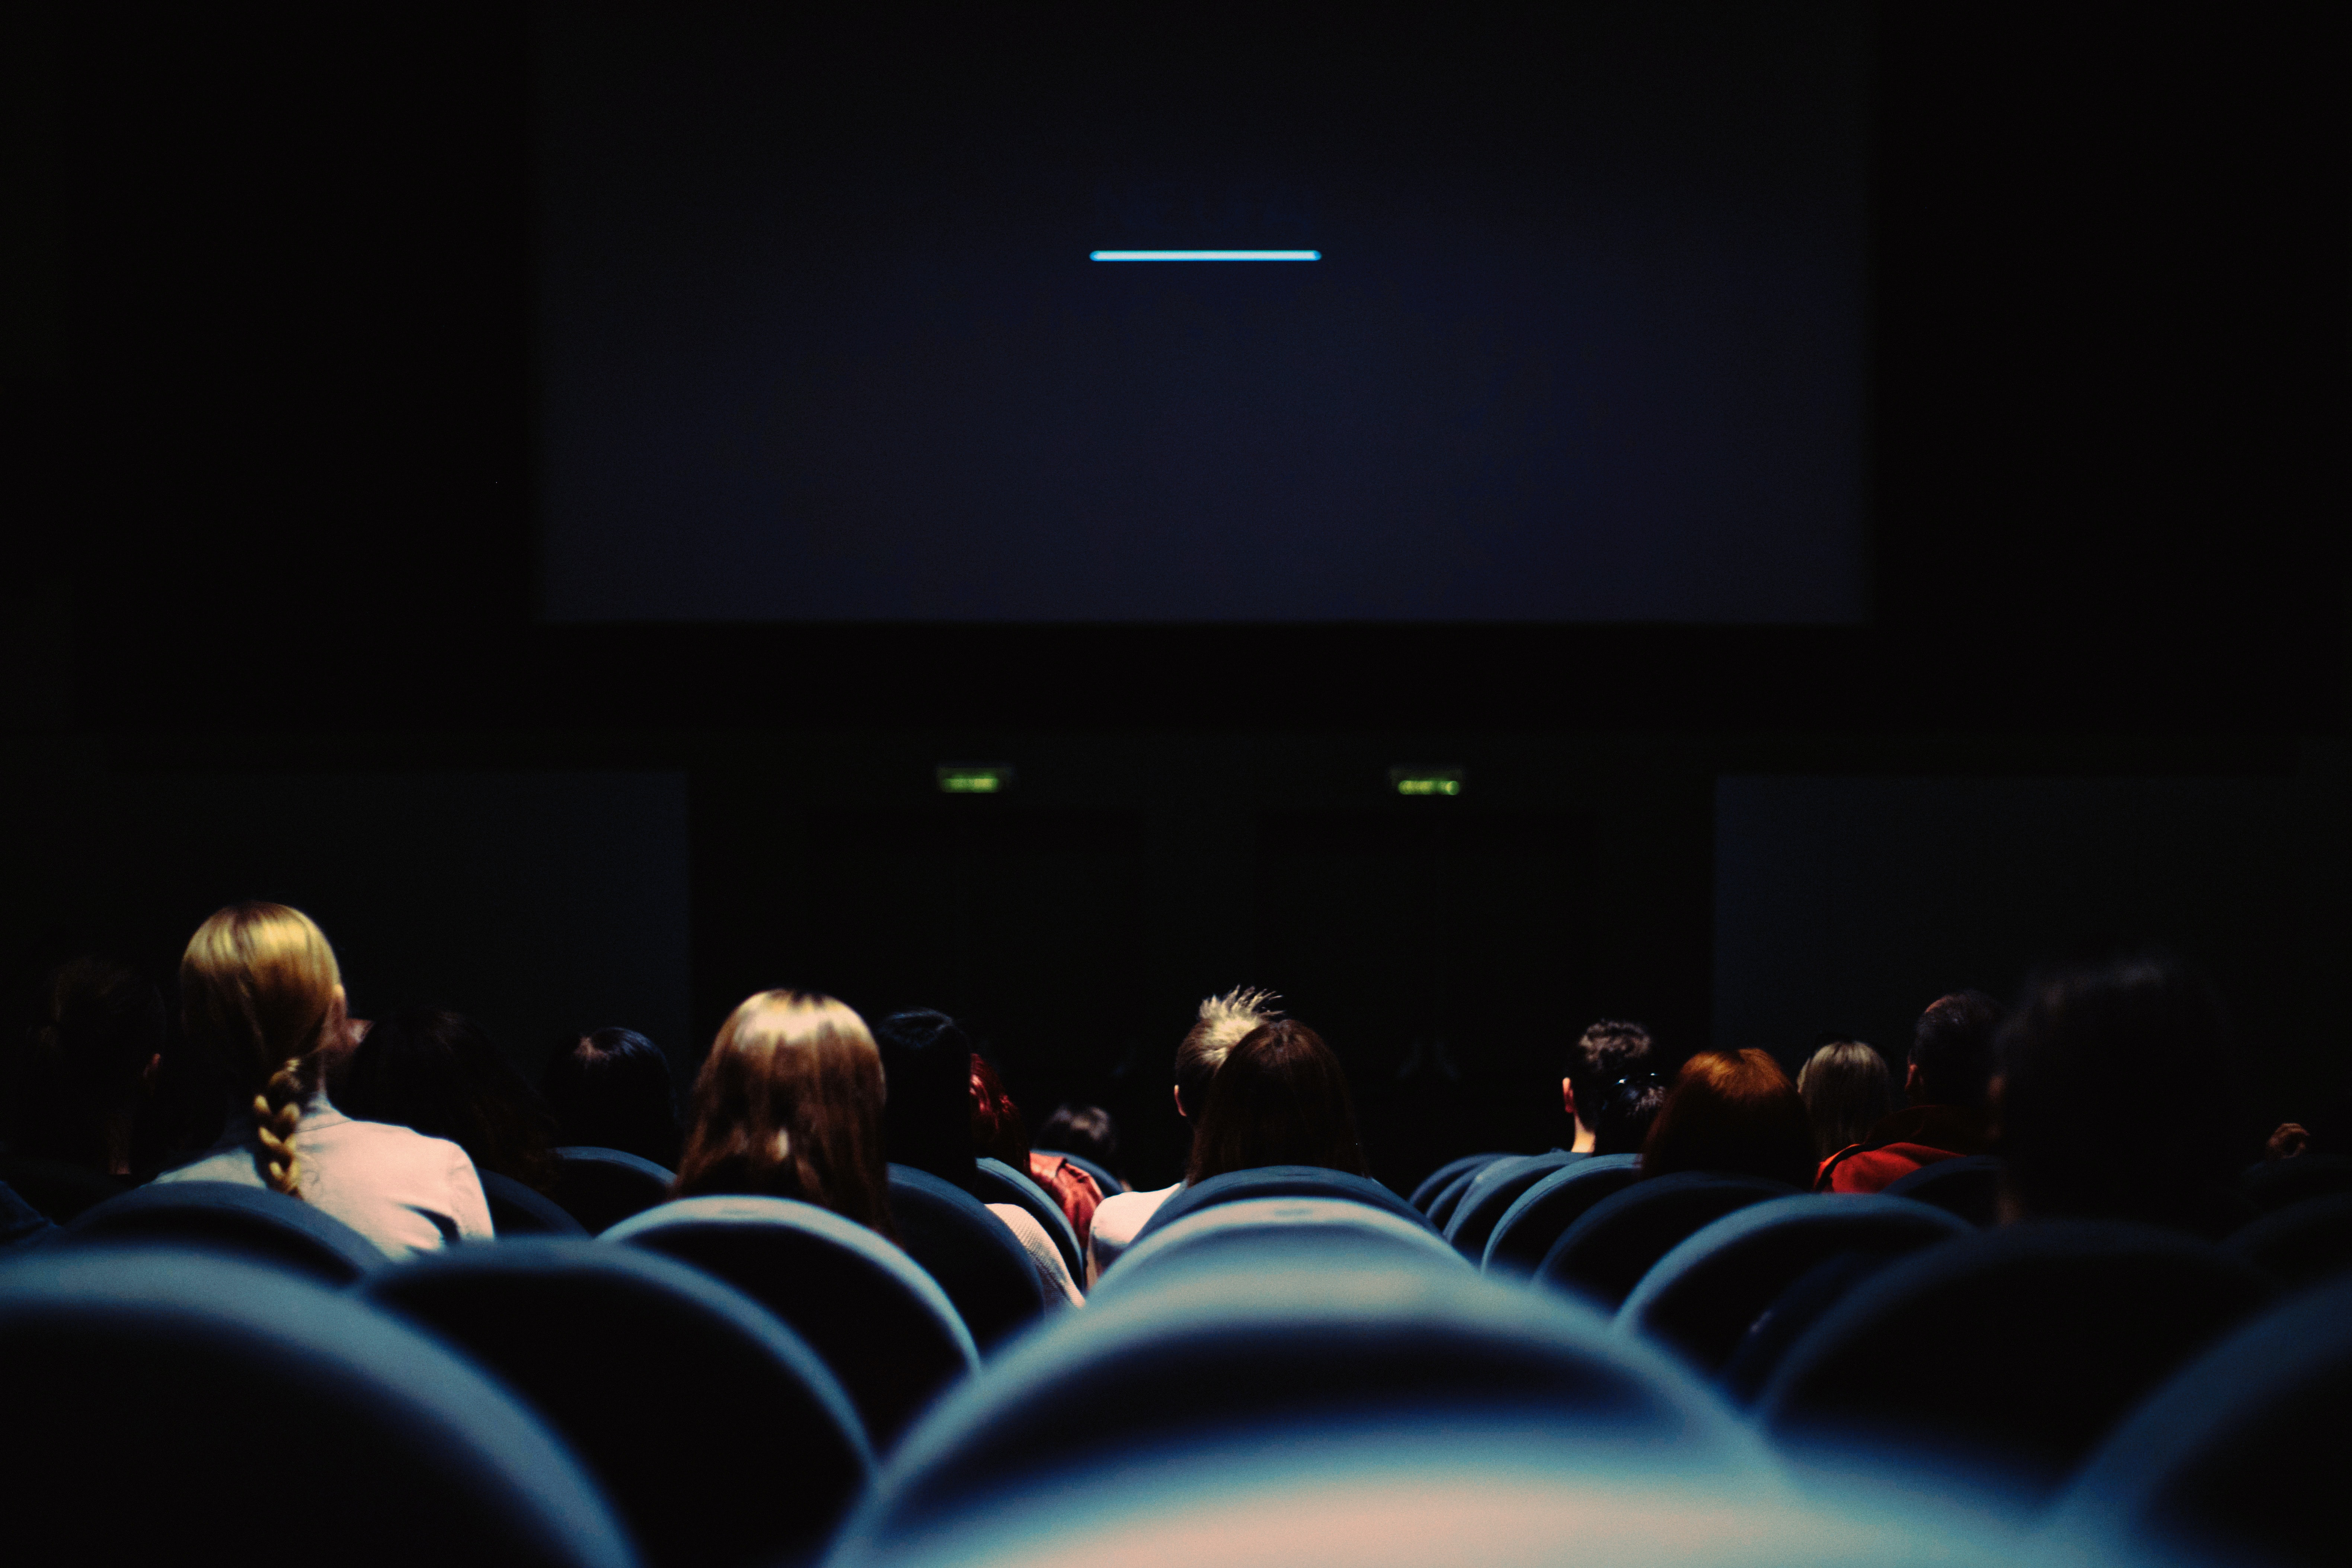 a crowd of people watching television in a dark room